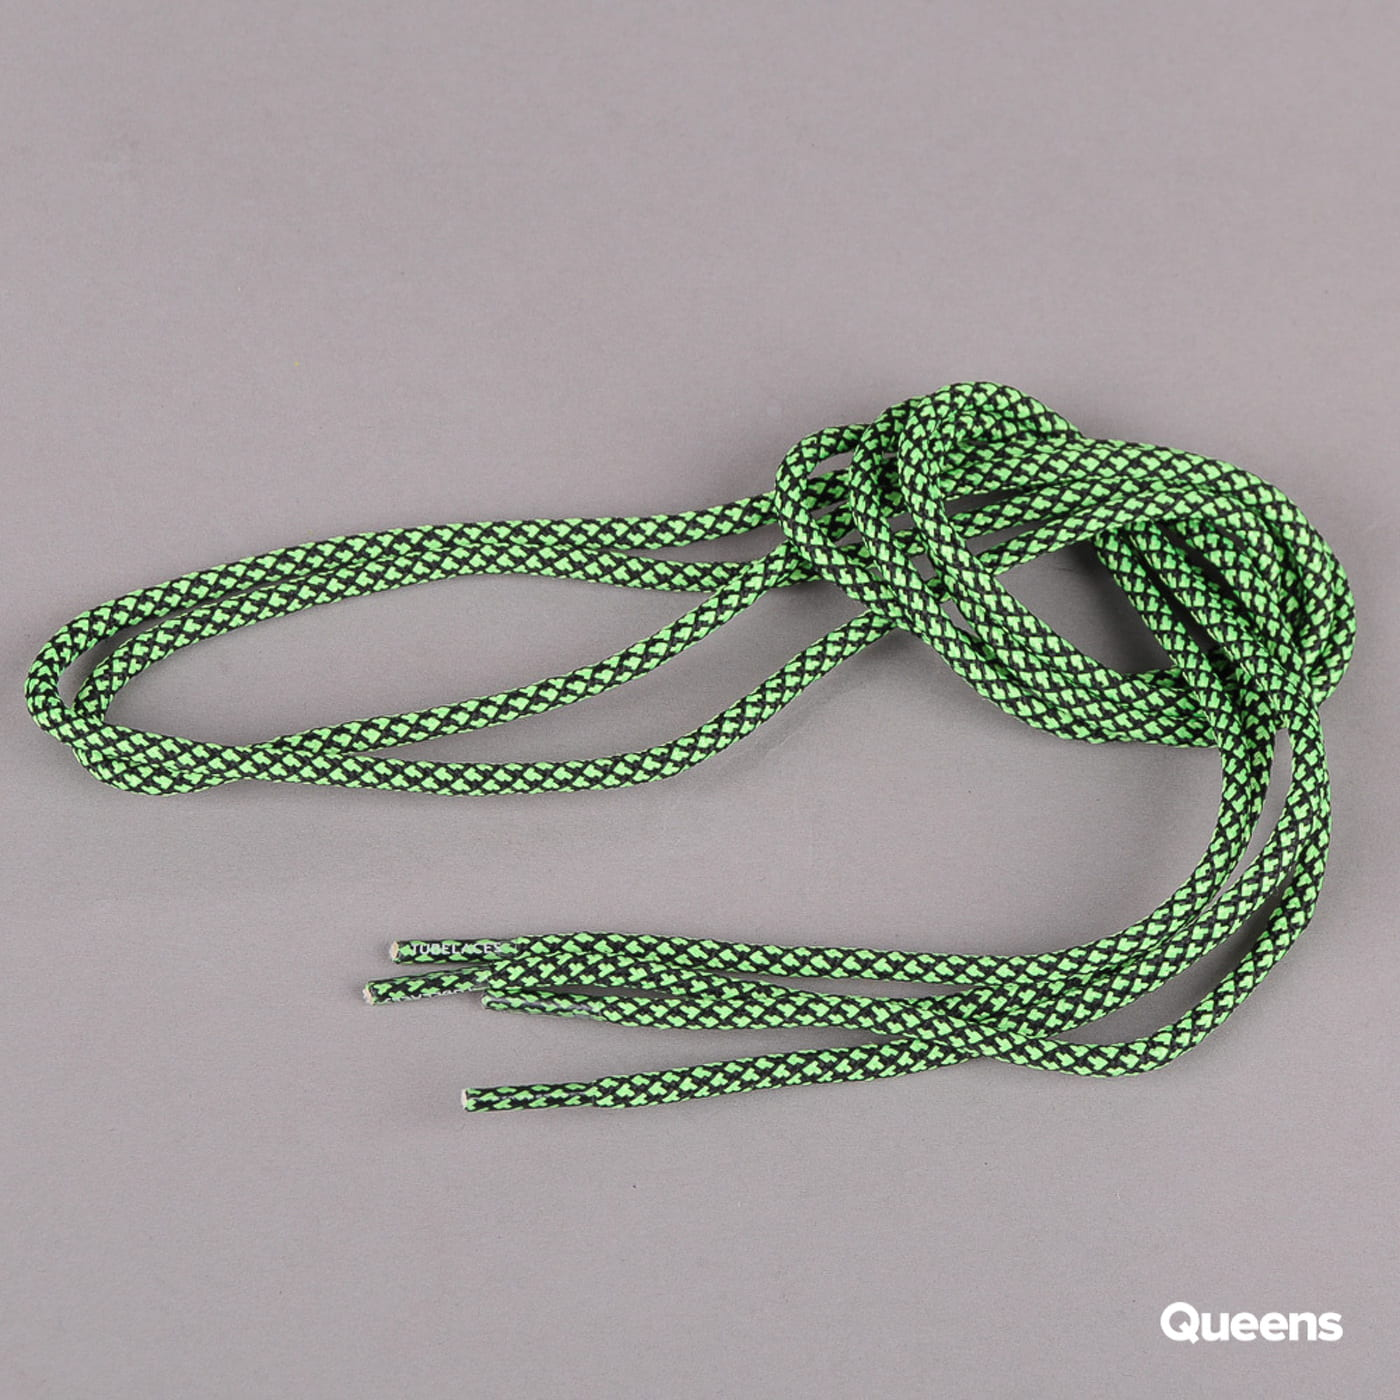 MD Tube Laces Rope Multi schwarz / neongrün